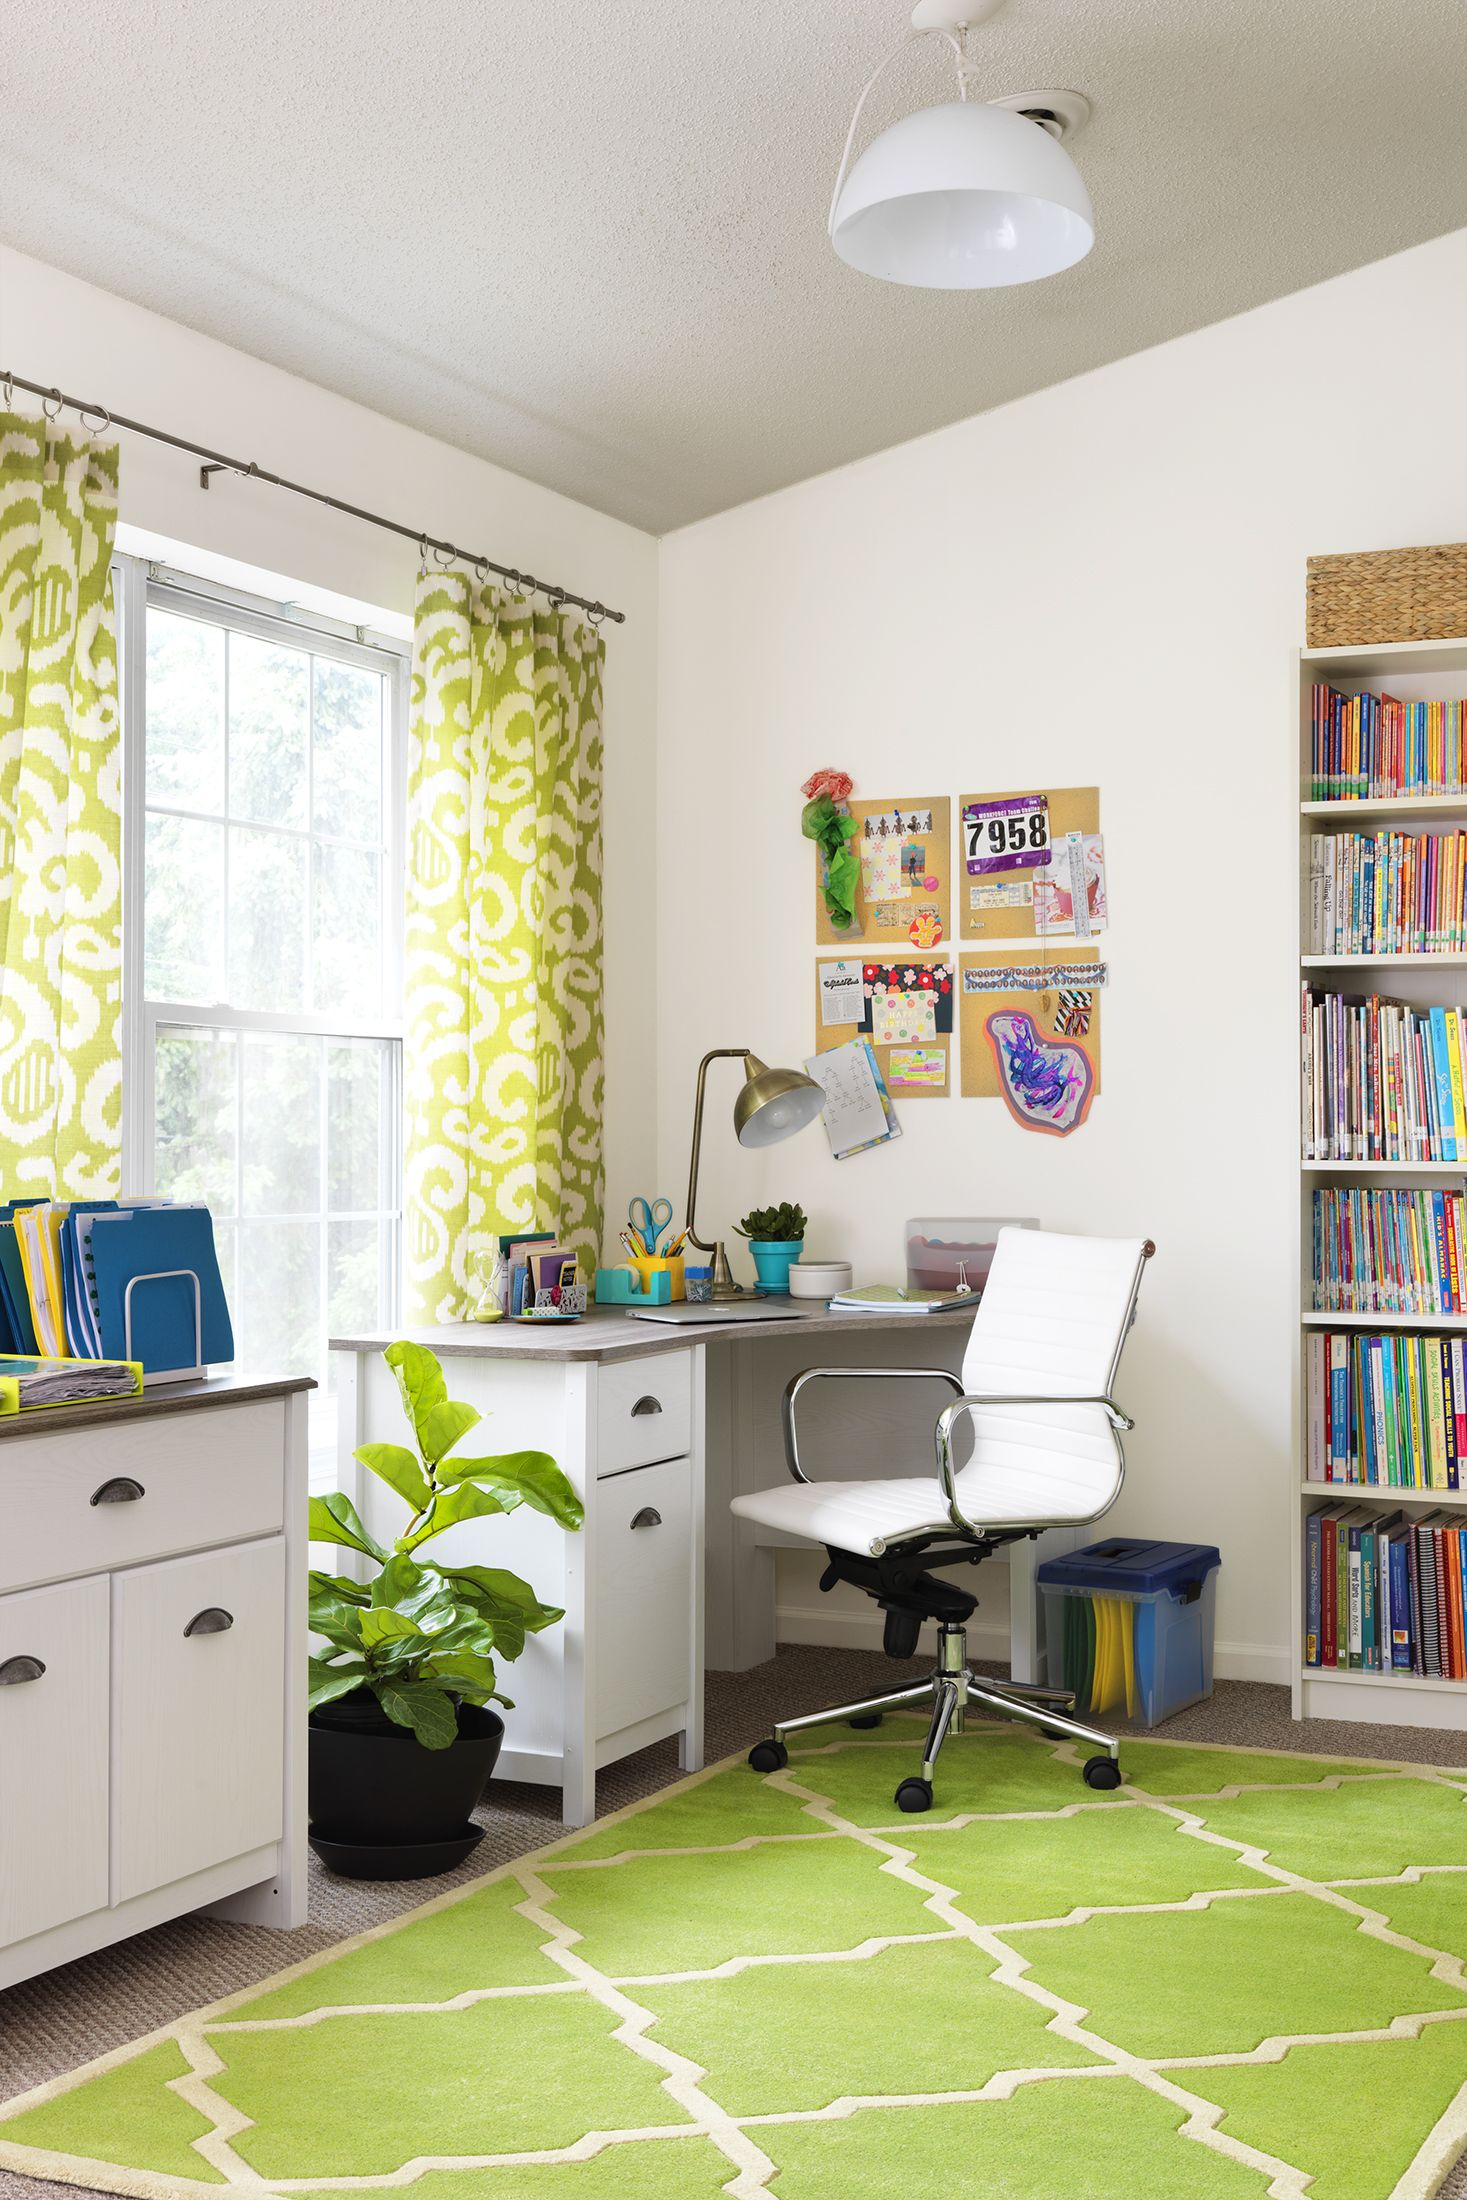 24 Best Home Office Ideas - How to Decorate a Home Office